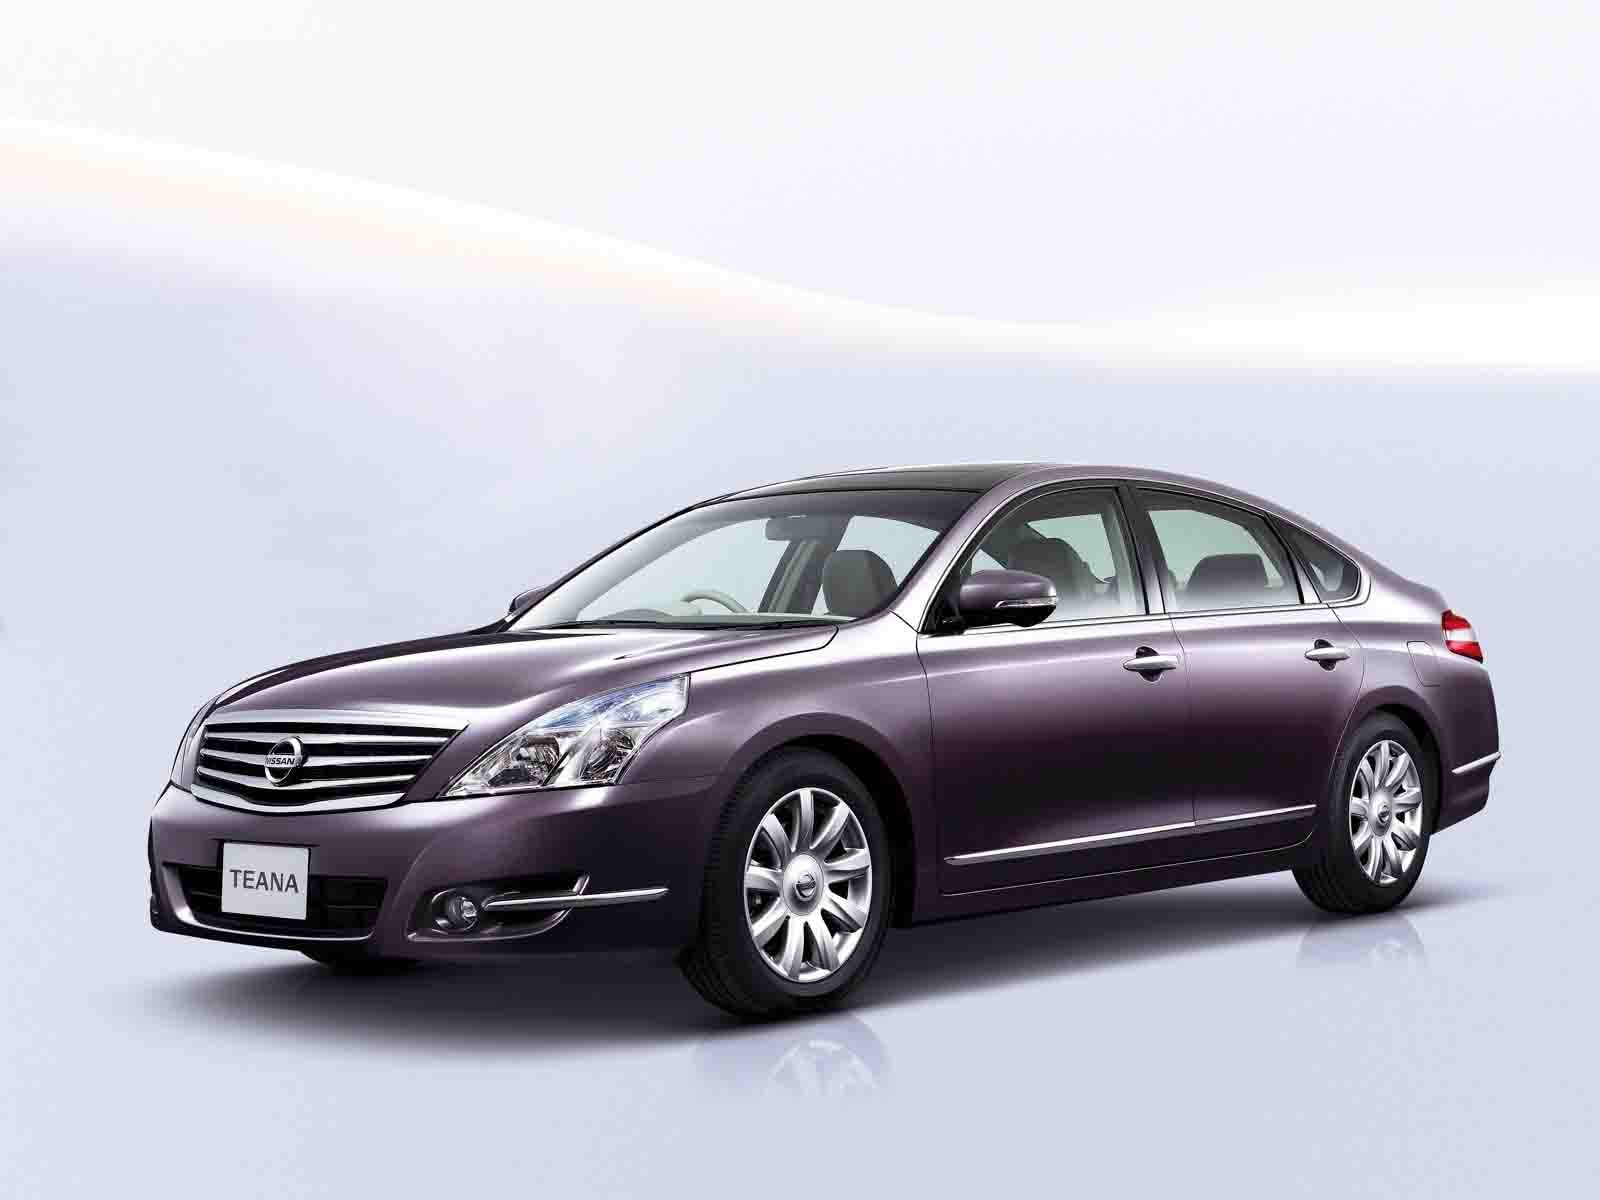 Nissan TEANA (New) 250 XV Price in India, Features, Car ...